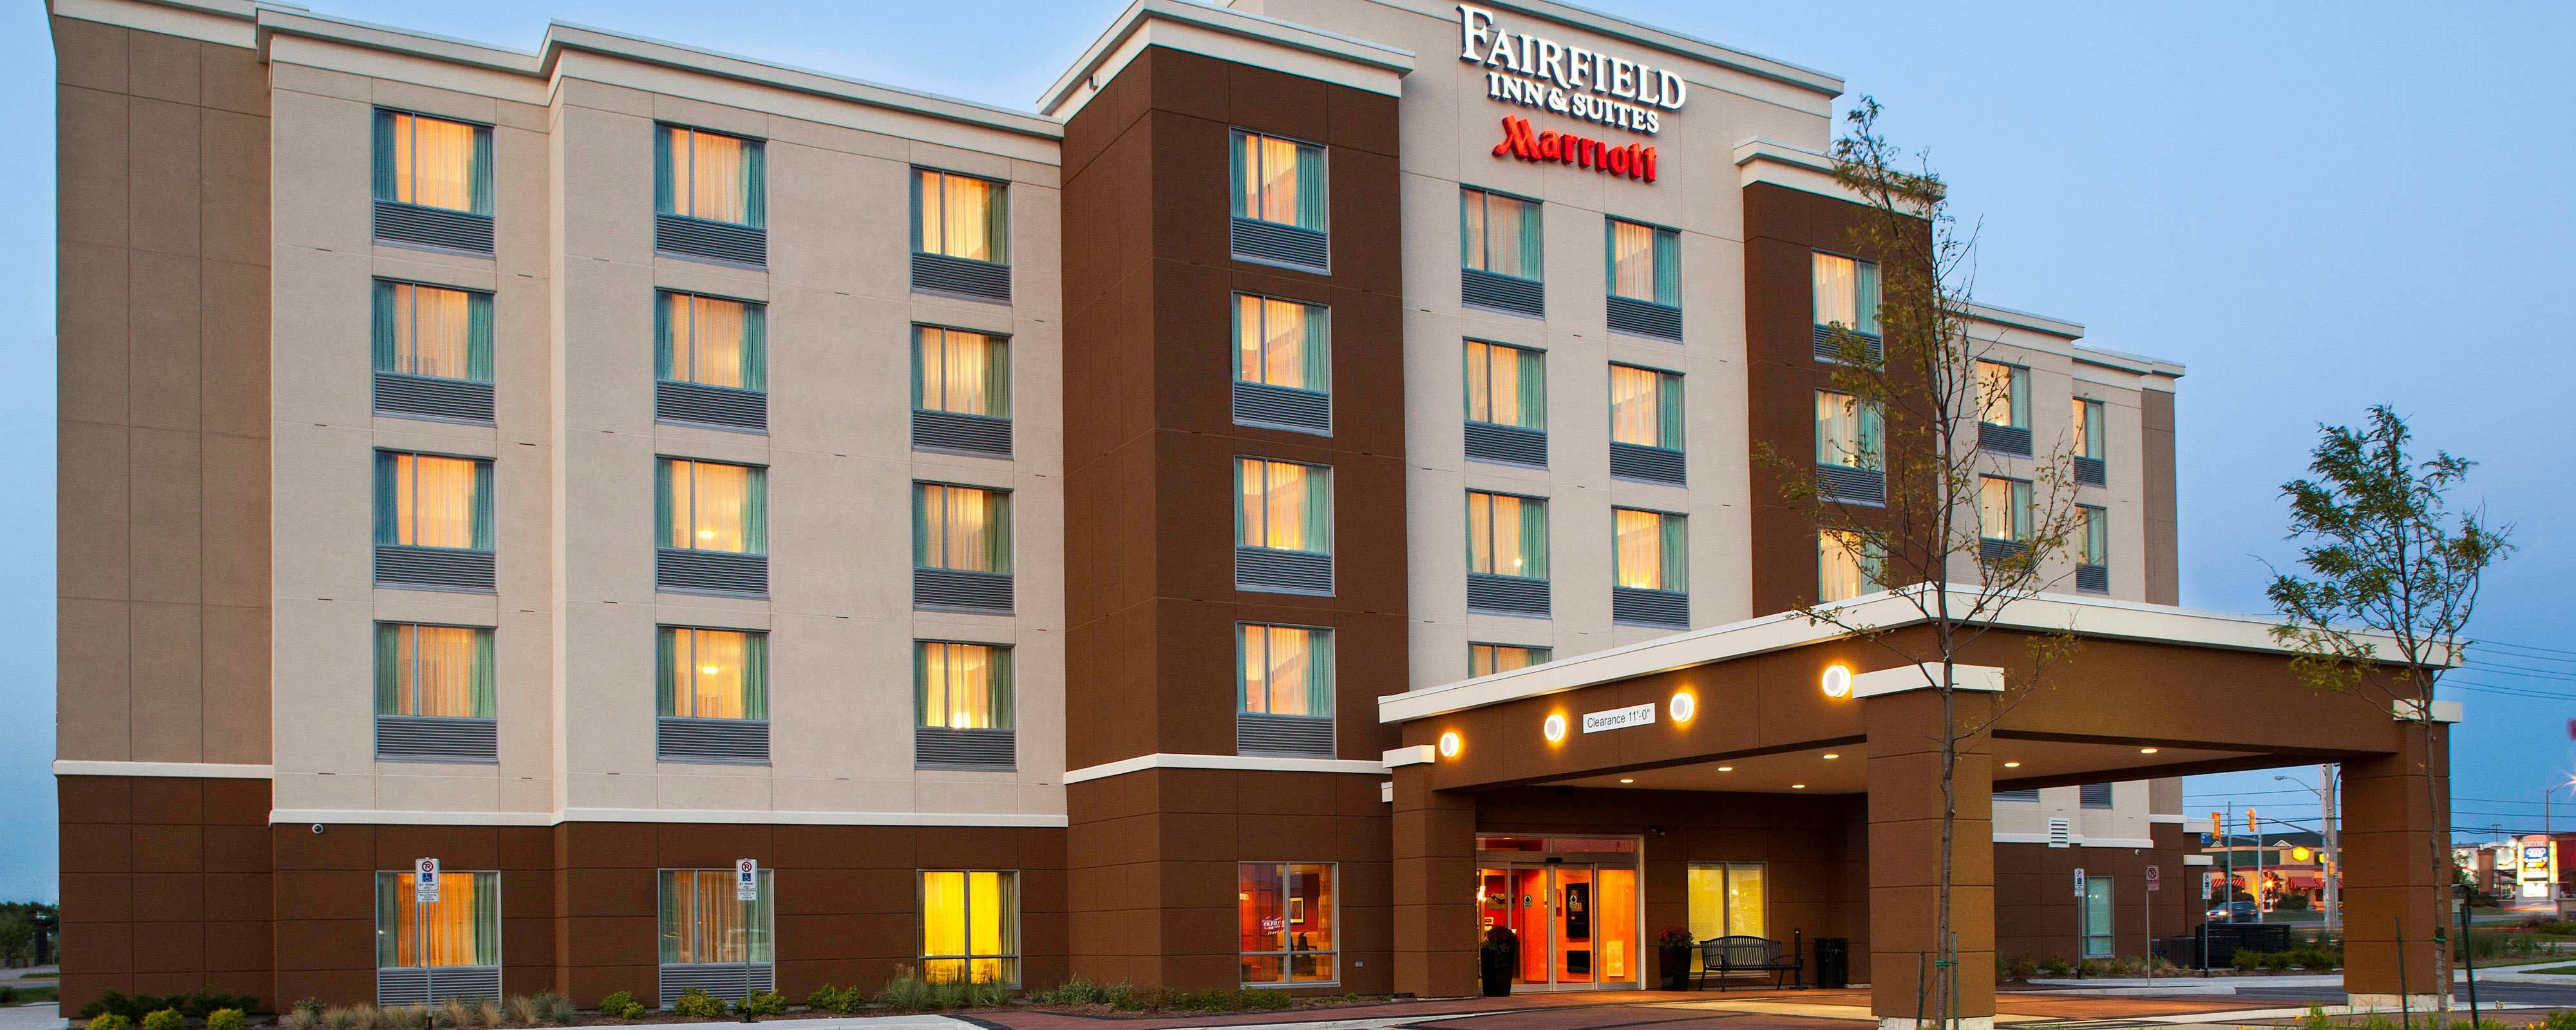 Hotels in Mississauga | Fairfield Inn & Suites Toronto Mississauga